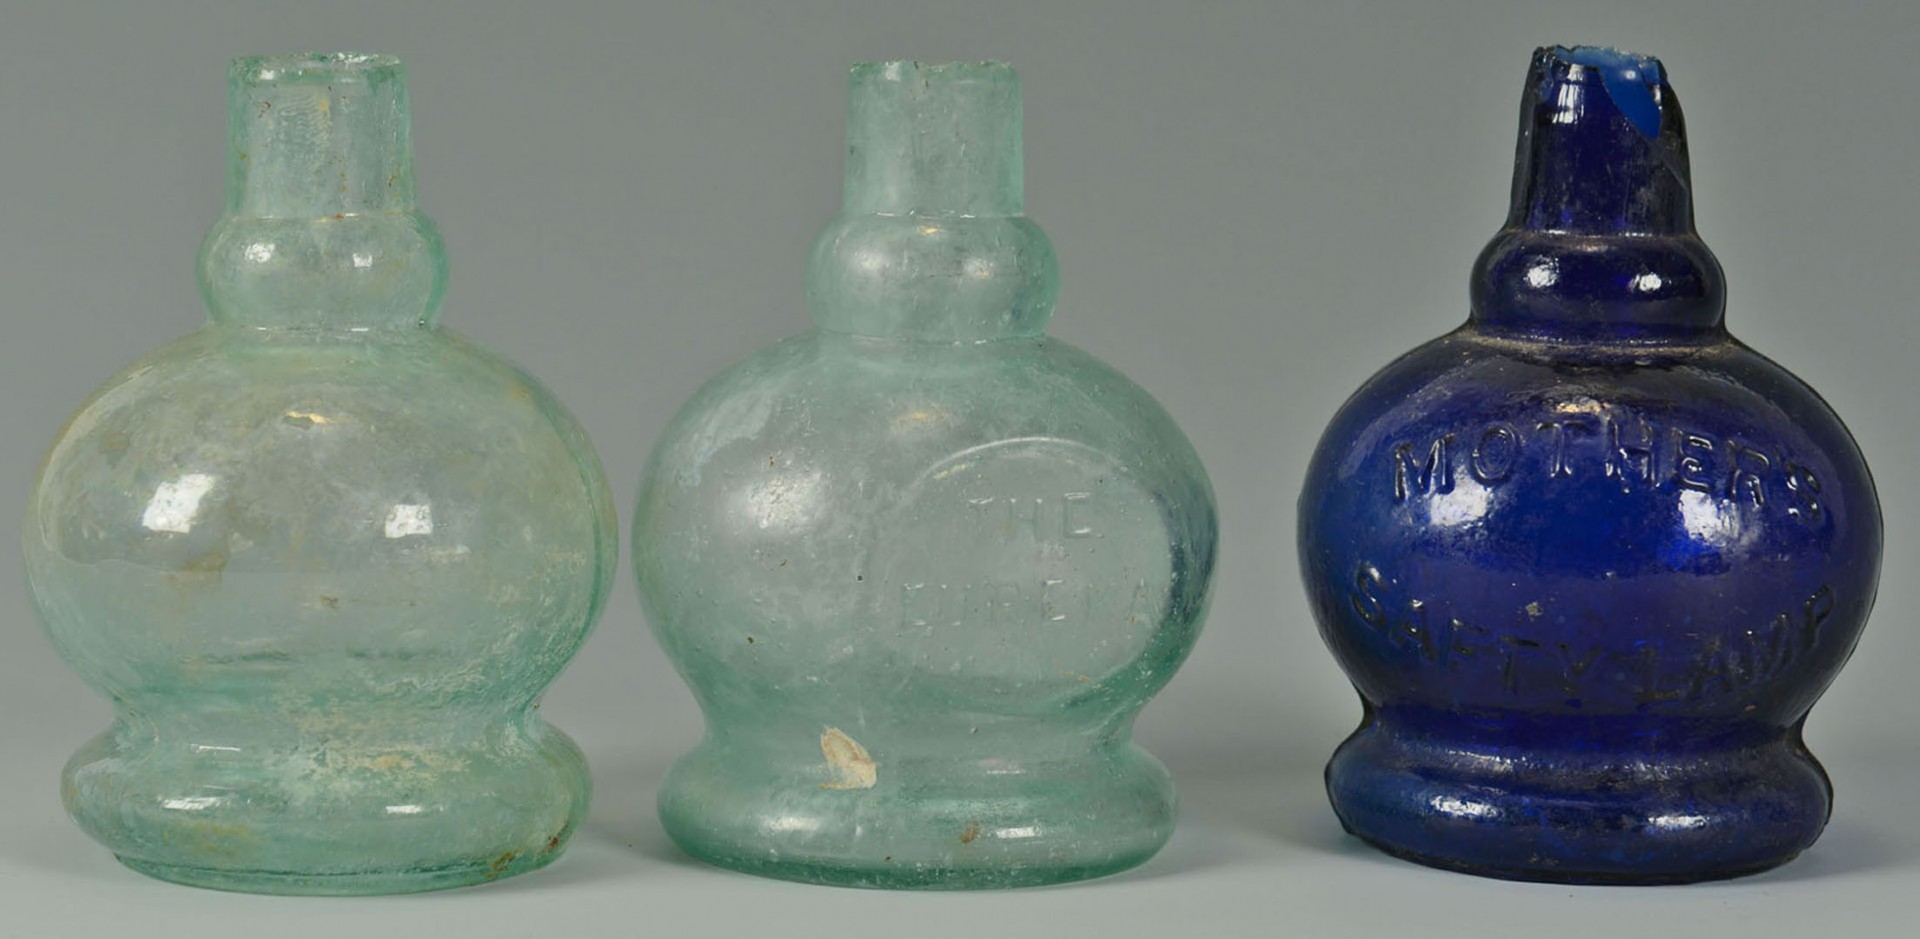 Lot 2872324: 23 Miniature blown, molded, & pressed glass oil an